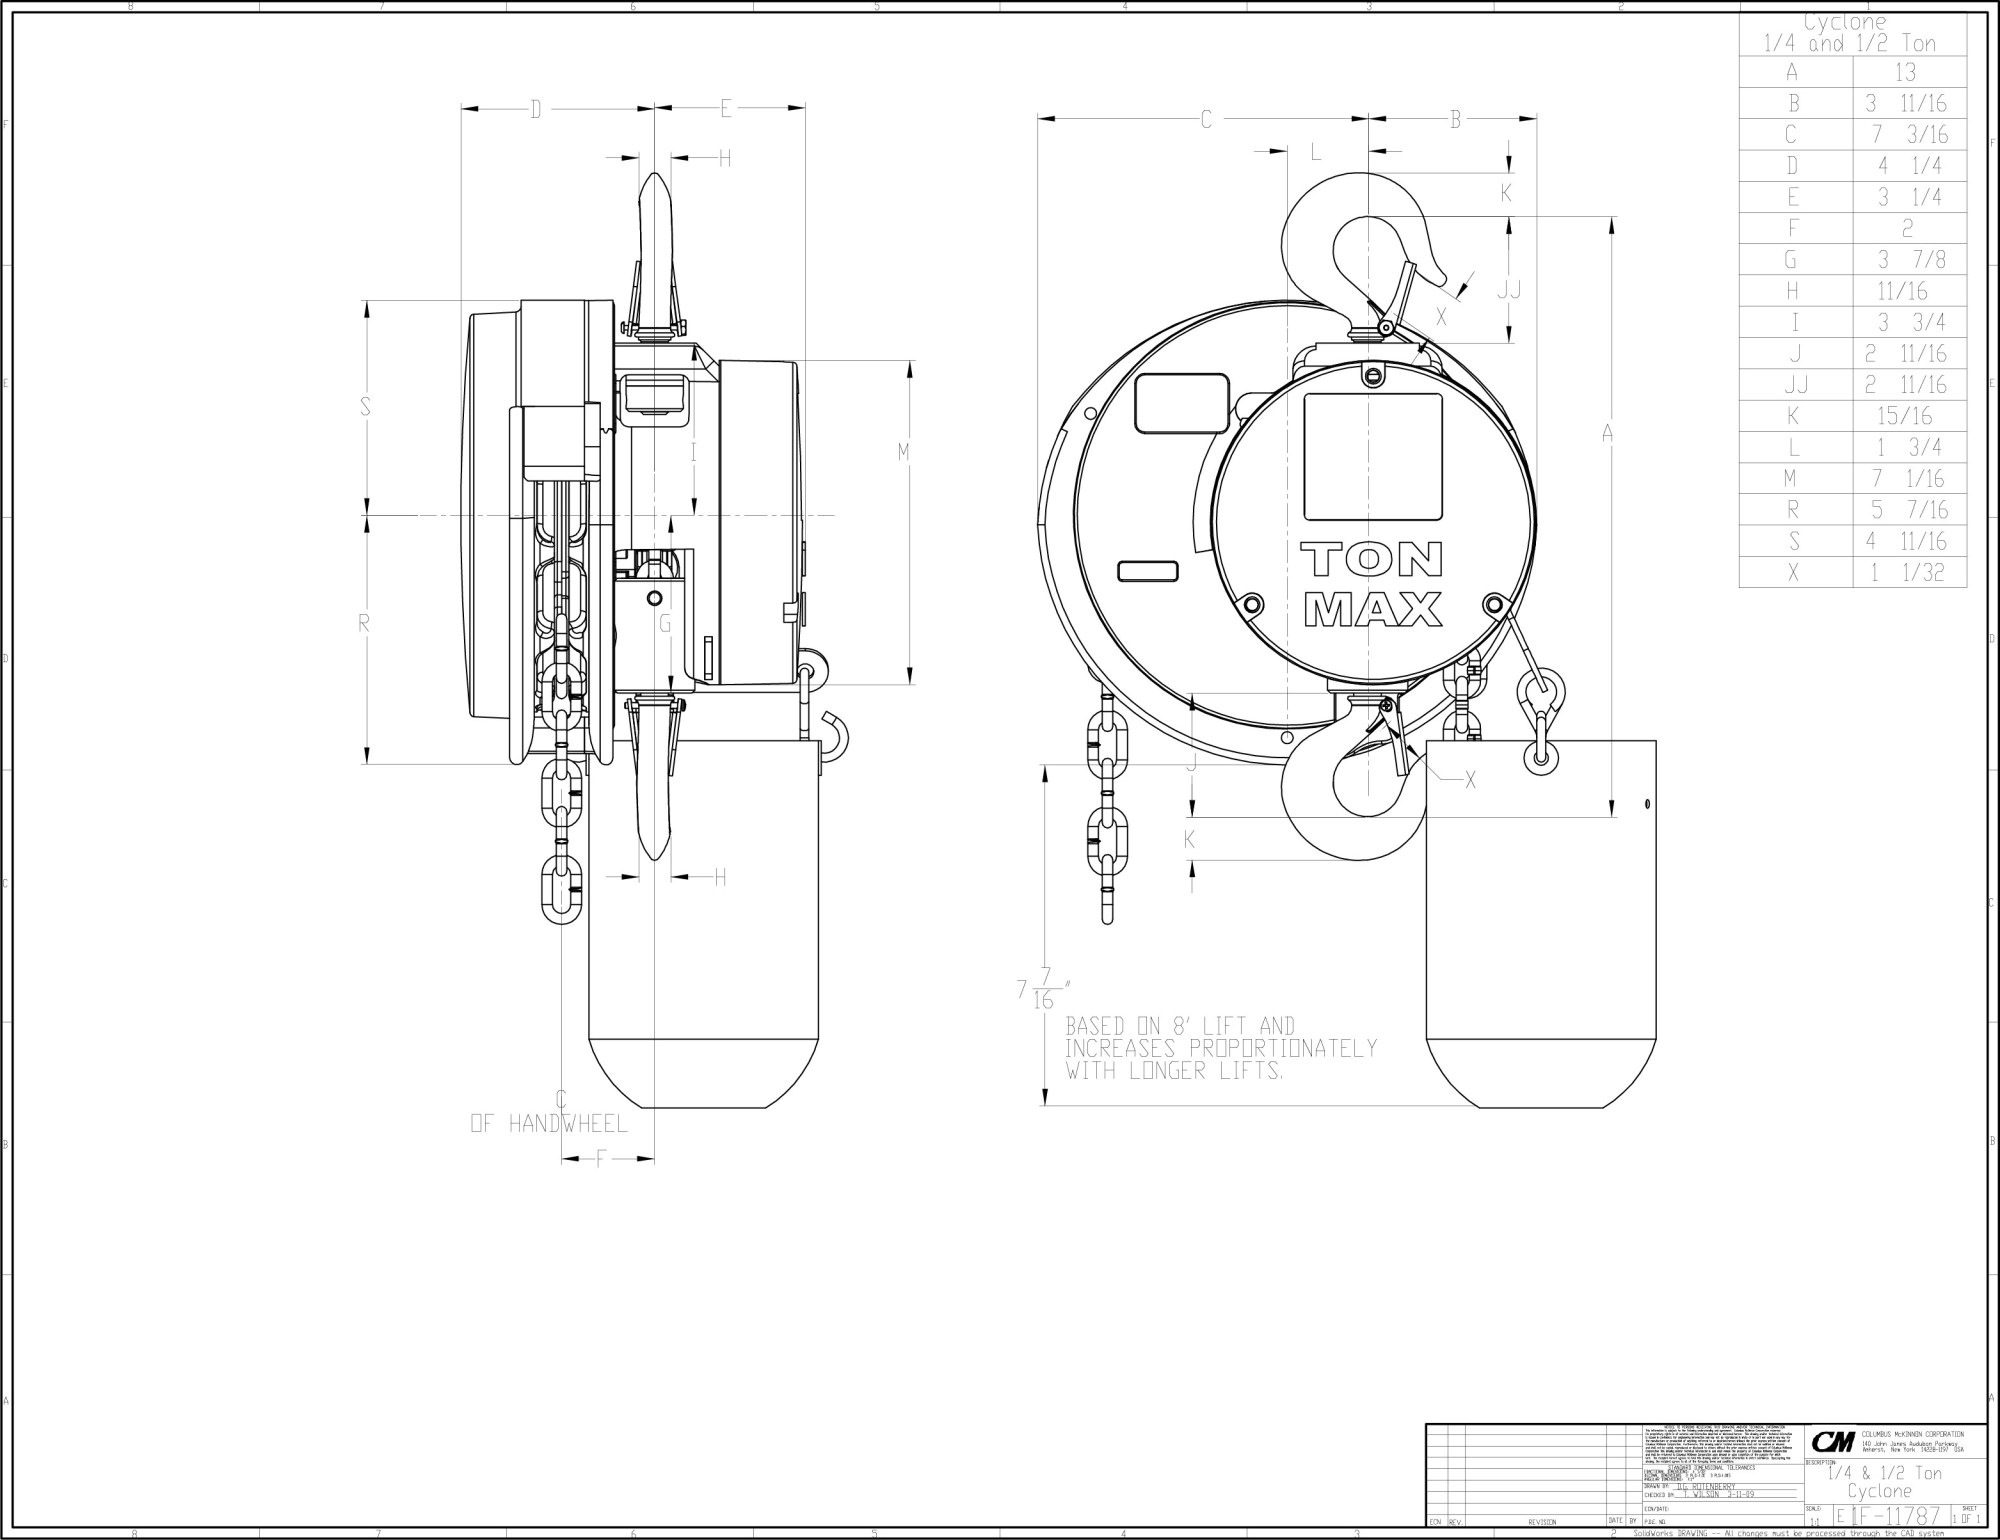 hight resolution of  cad image 1f11787 25 5 ton